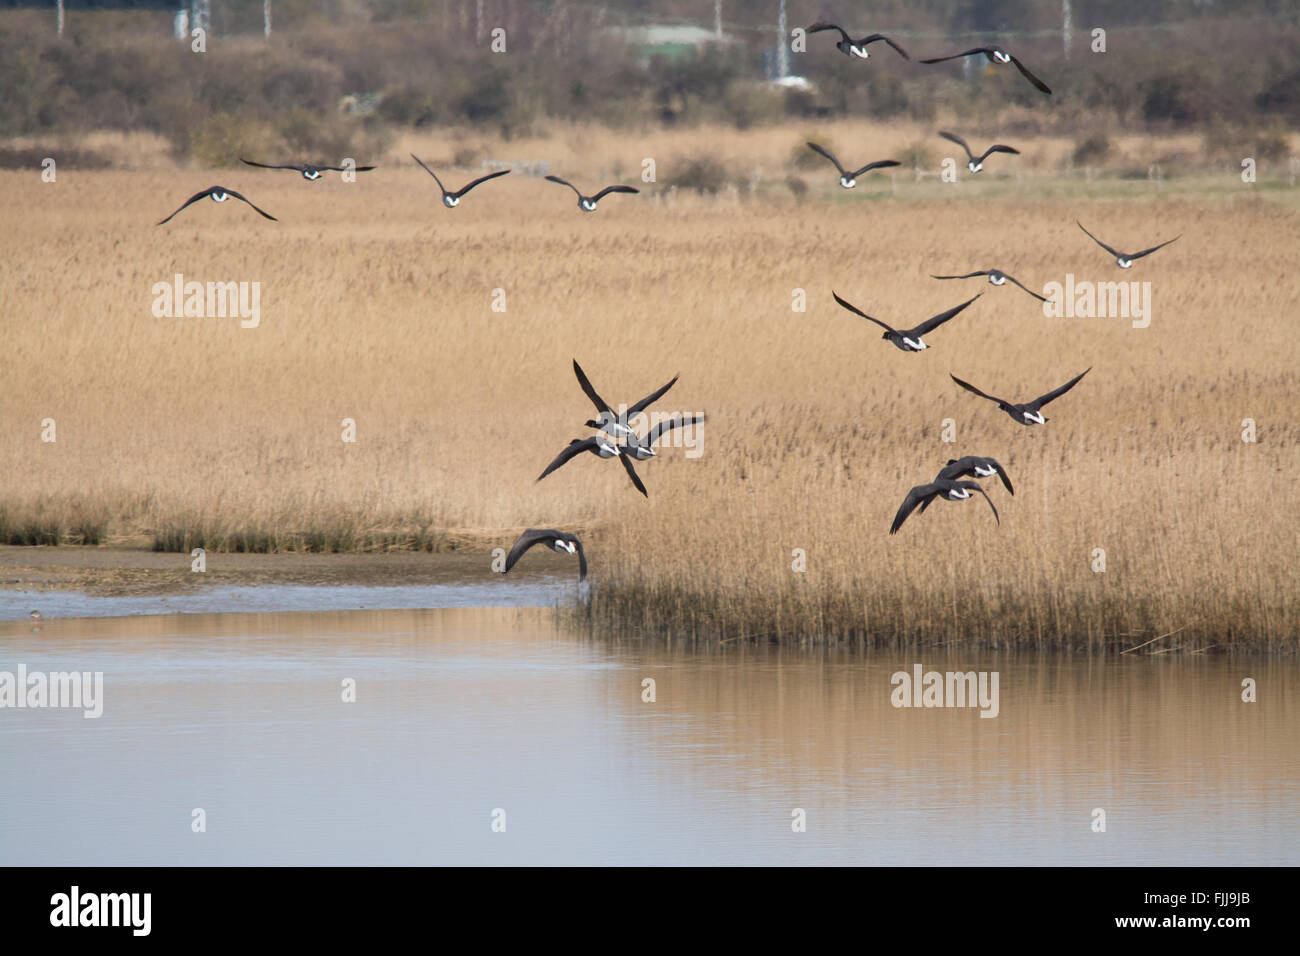 Brent geese (Branta bernicla) in flight over Farlington Marshes in Hampshire, England. - Stock Image